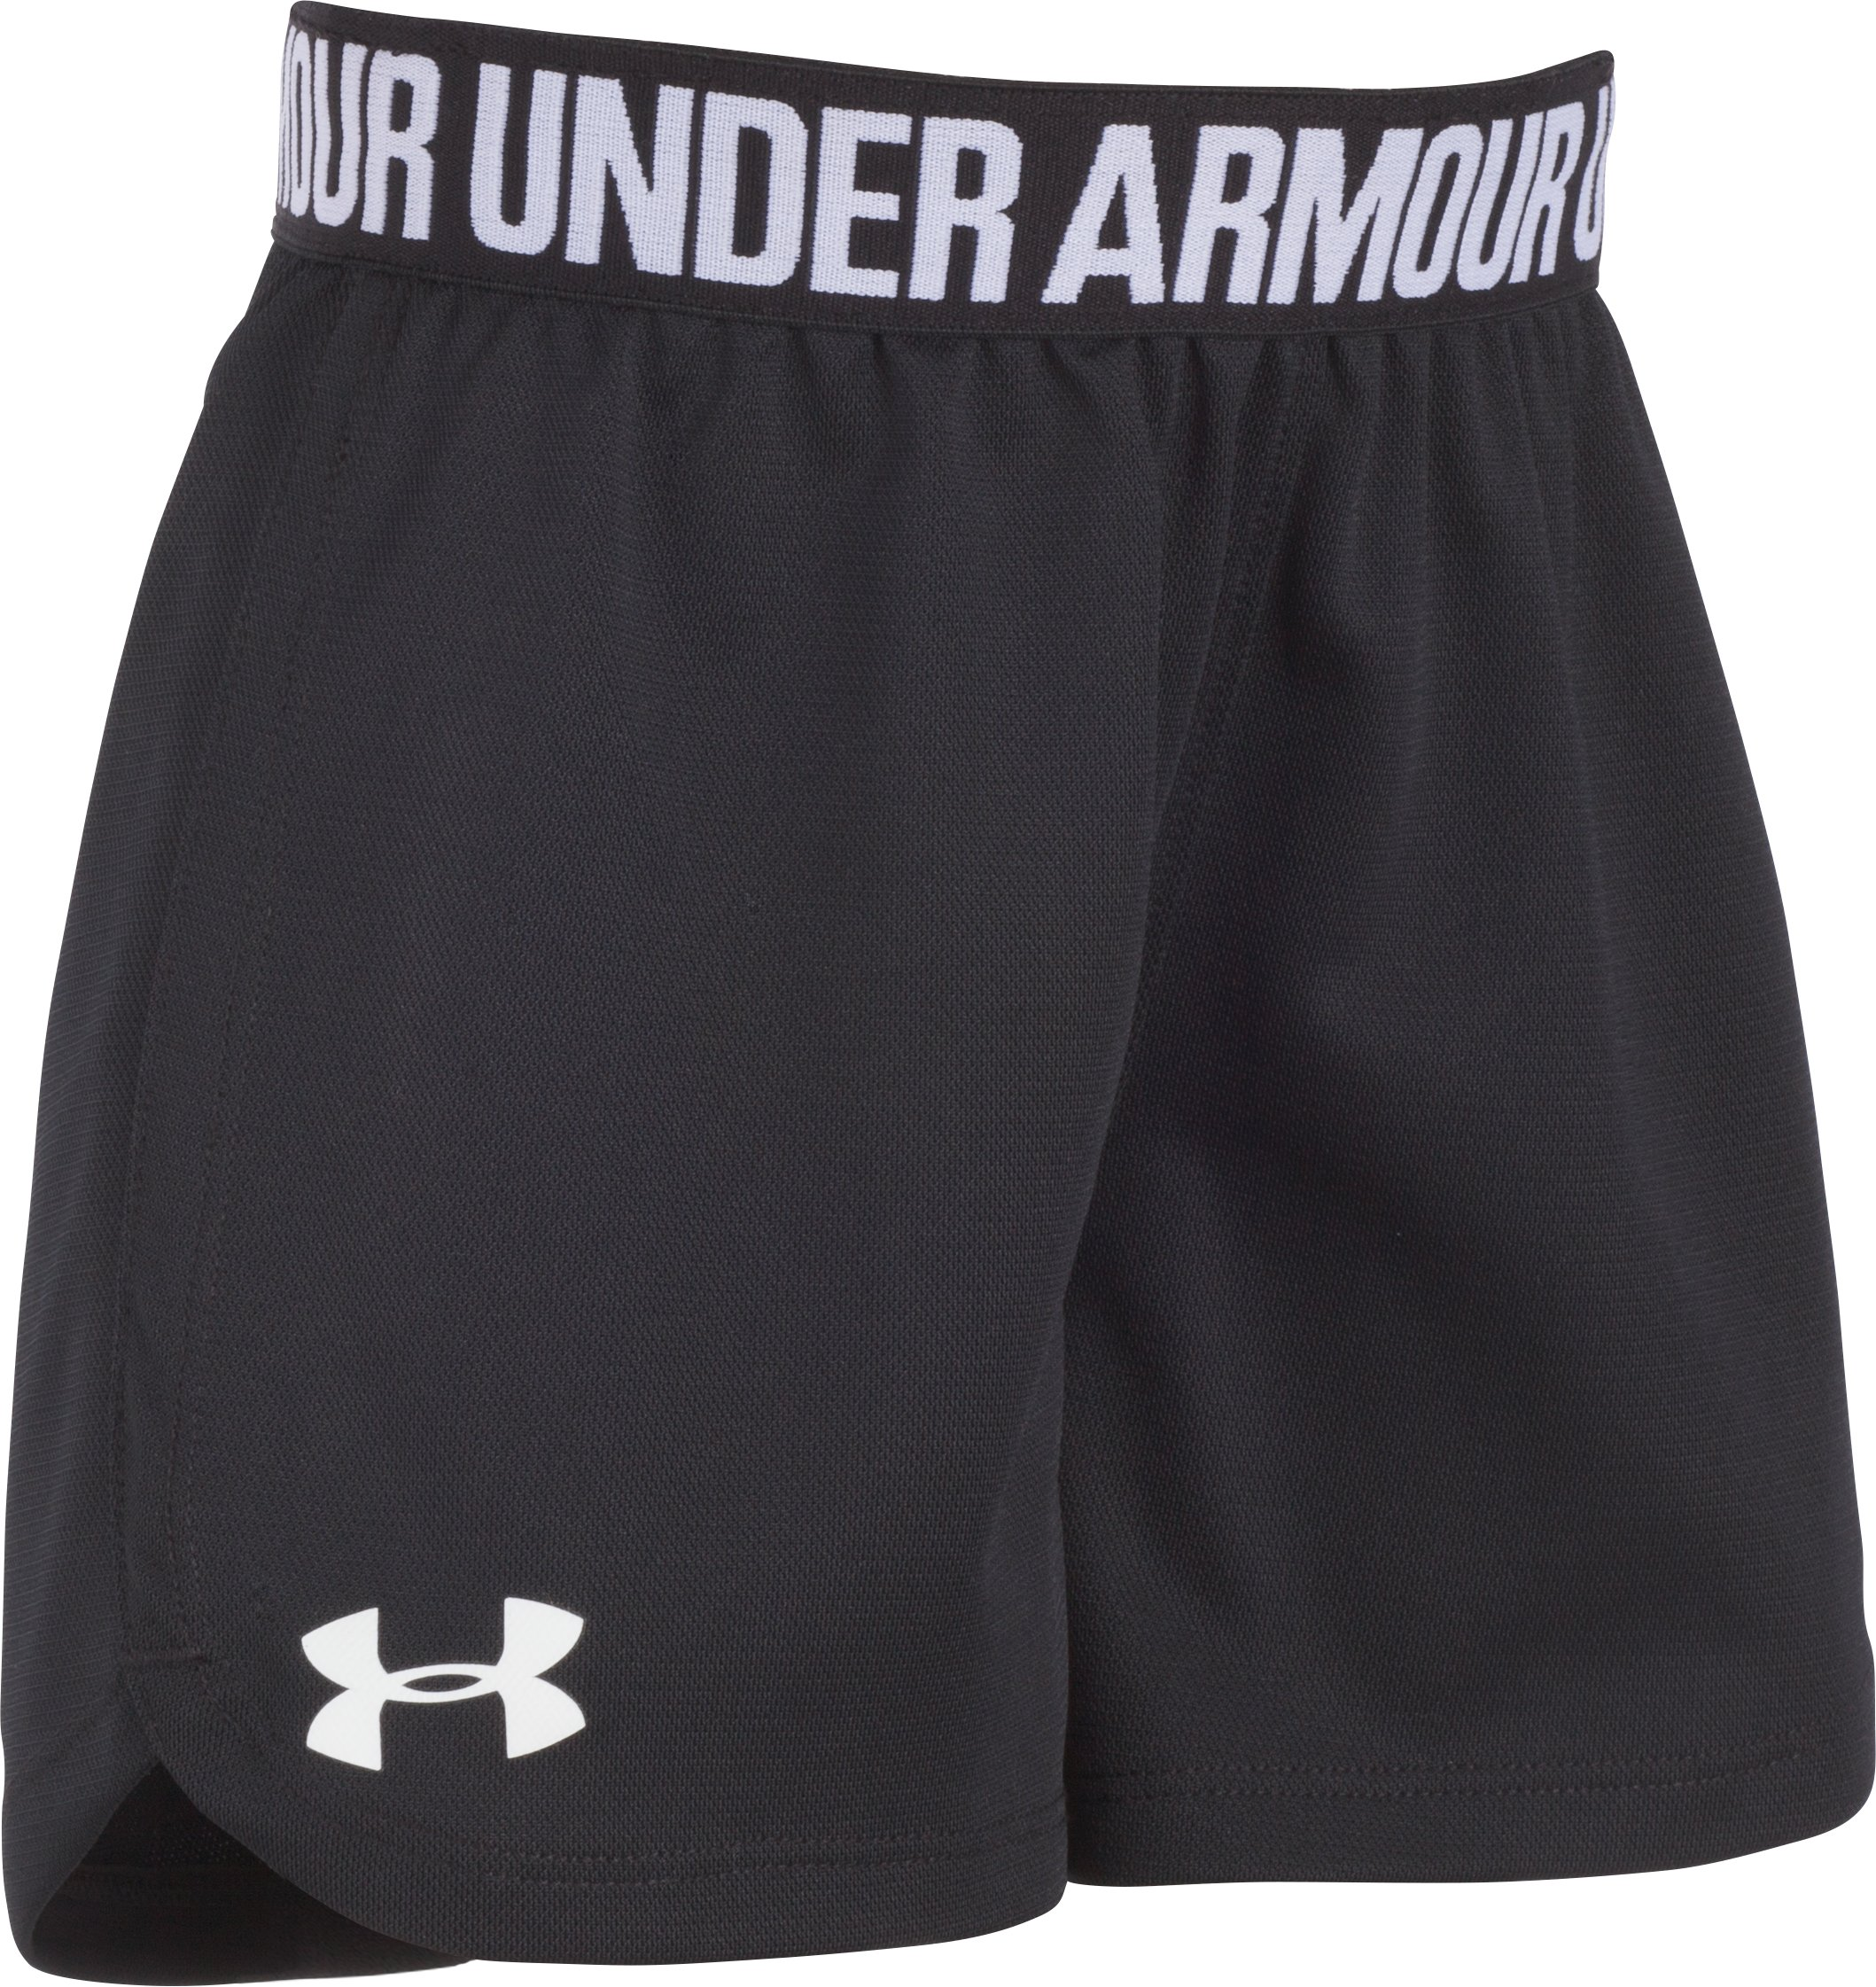 Girls' Pre-School UA Play Up Shorts, Black , Laydown